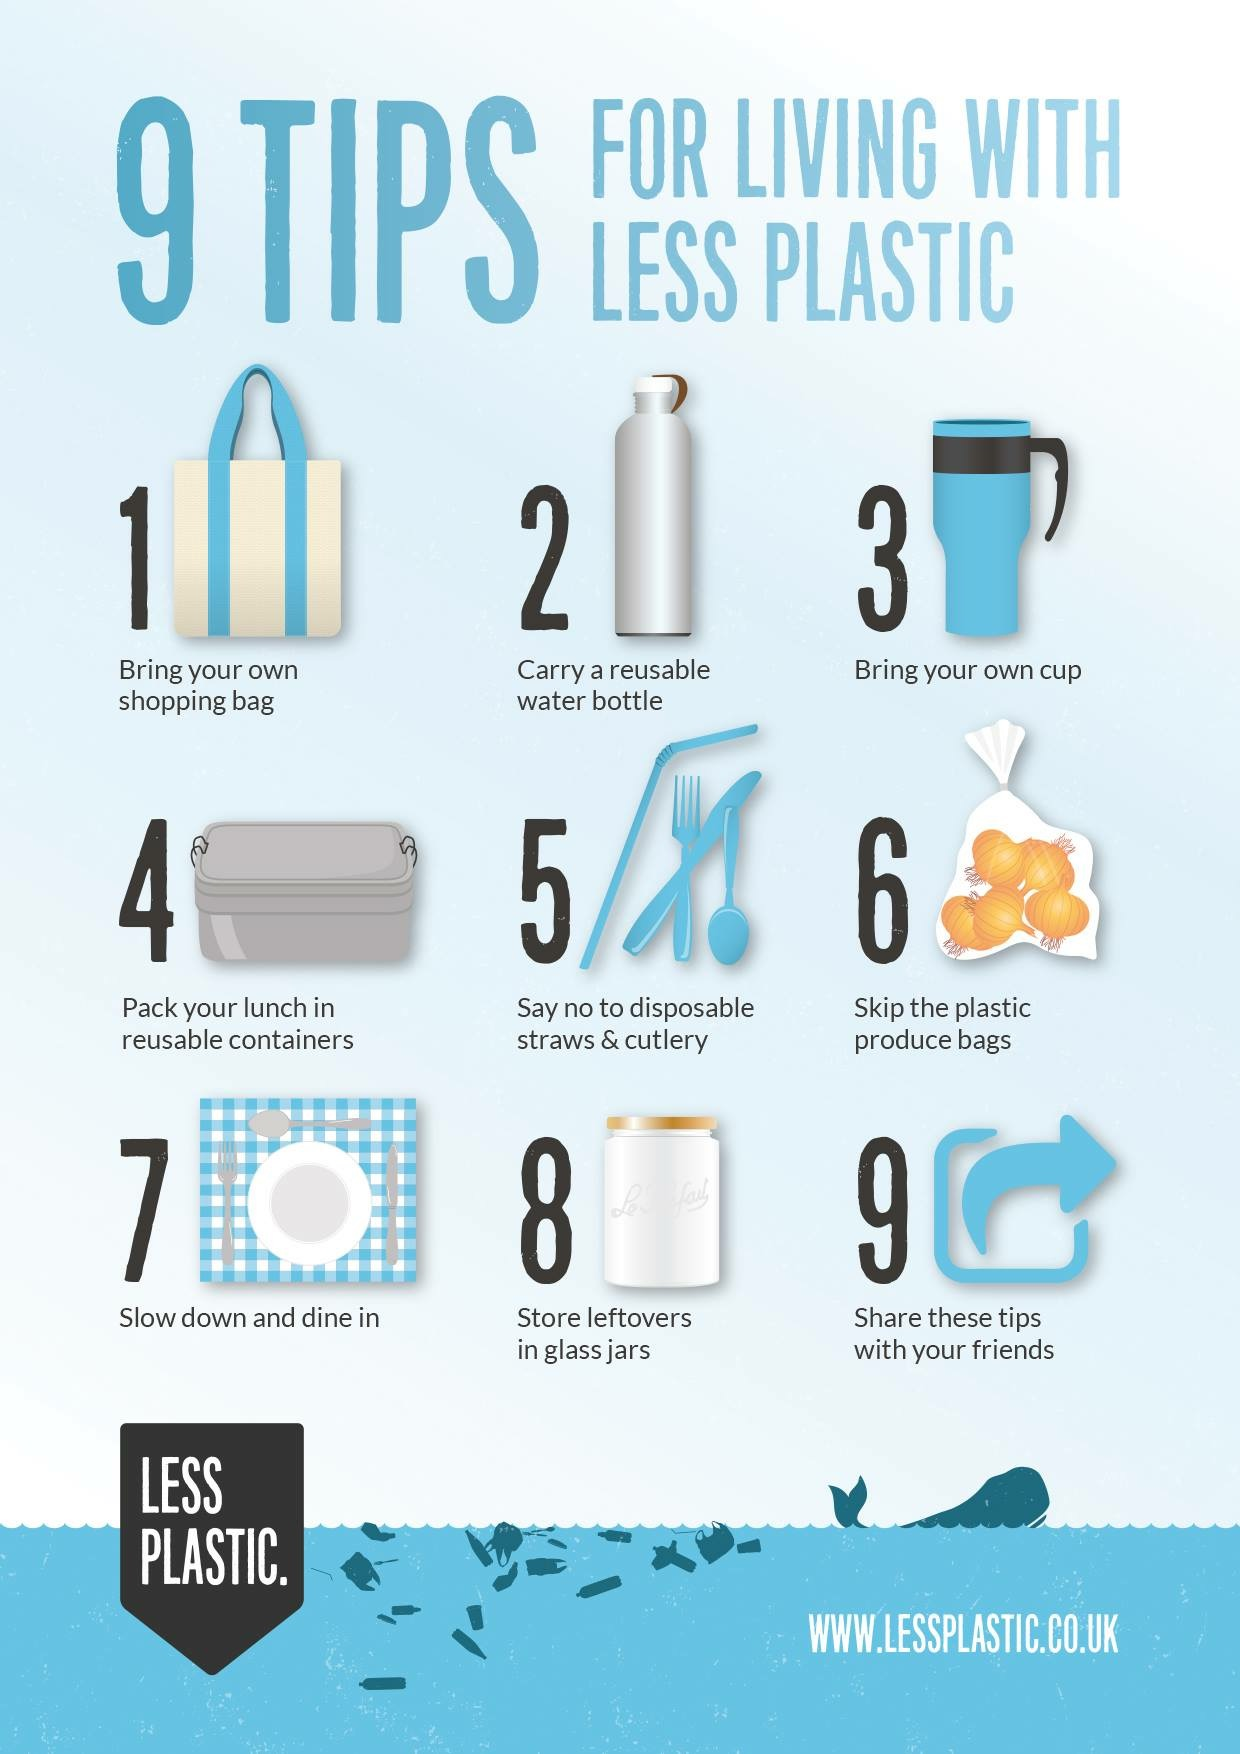 LIving with less plastic. Save the oceans!